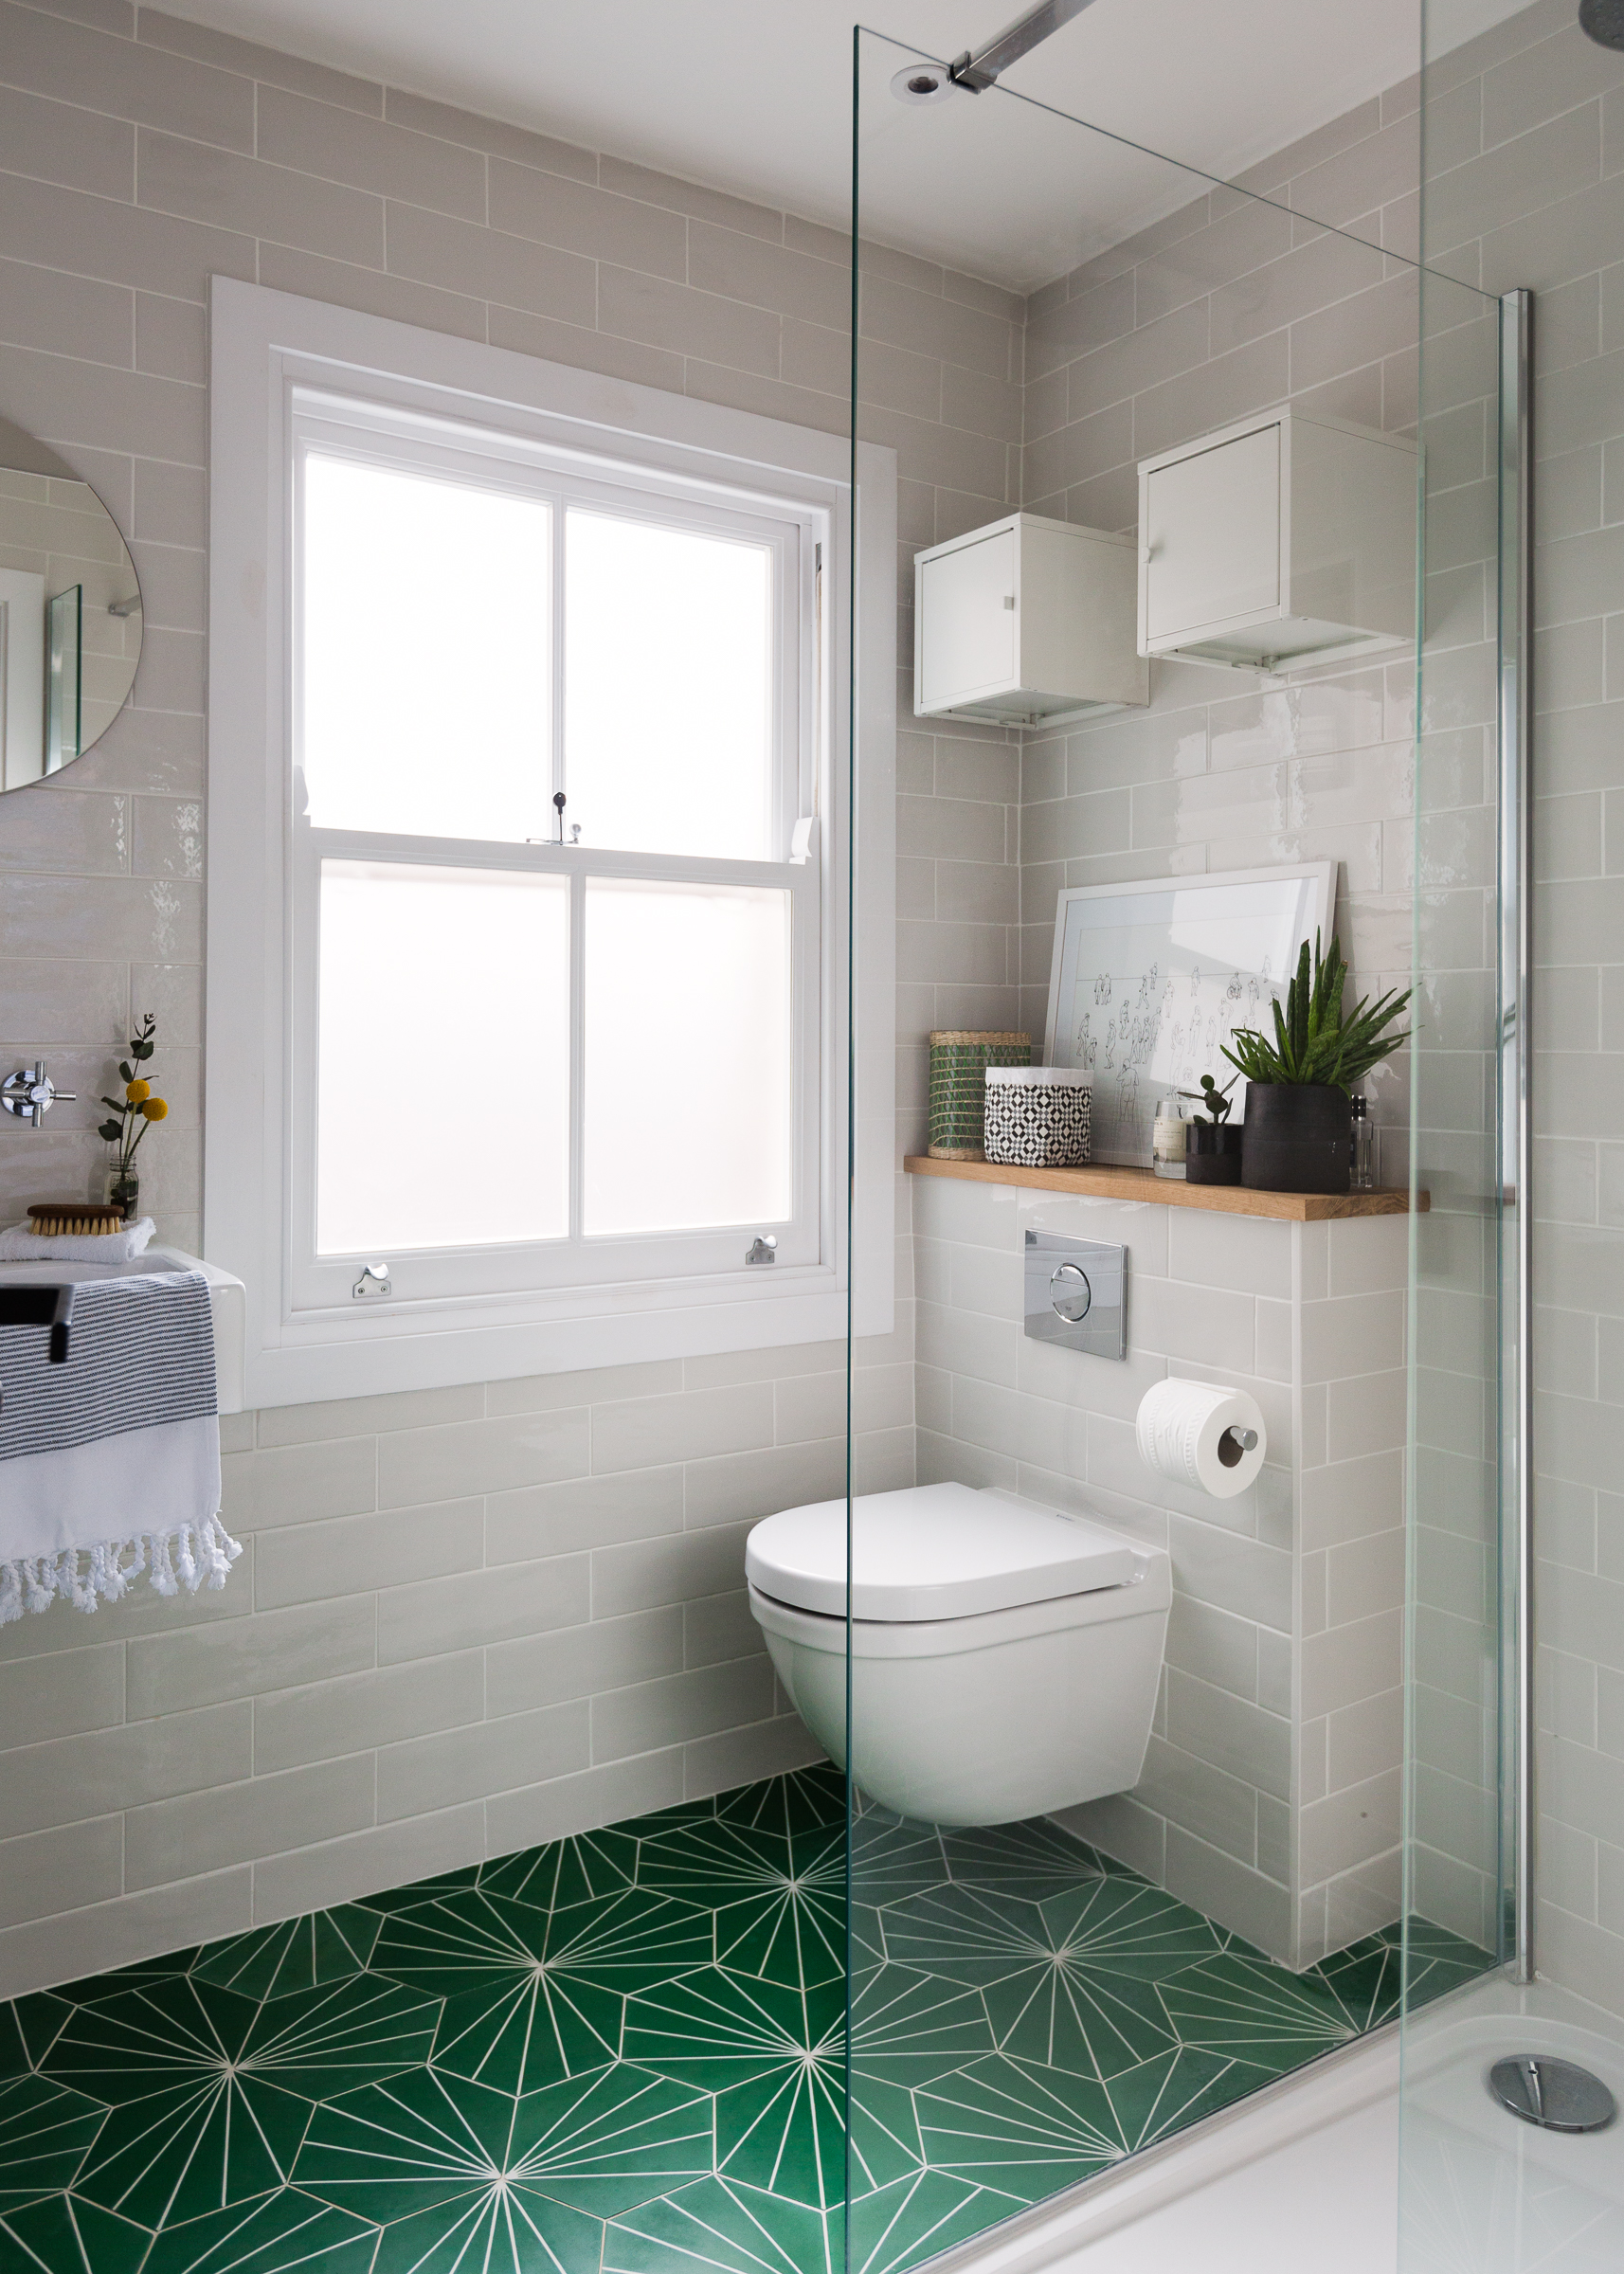 Getting the right bathroom tiling ideas - goodworksfurniture